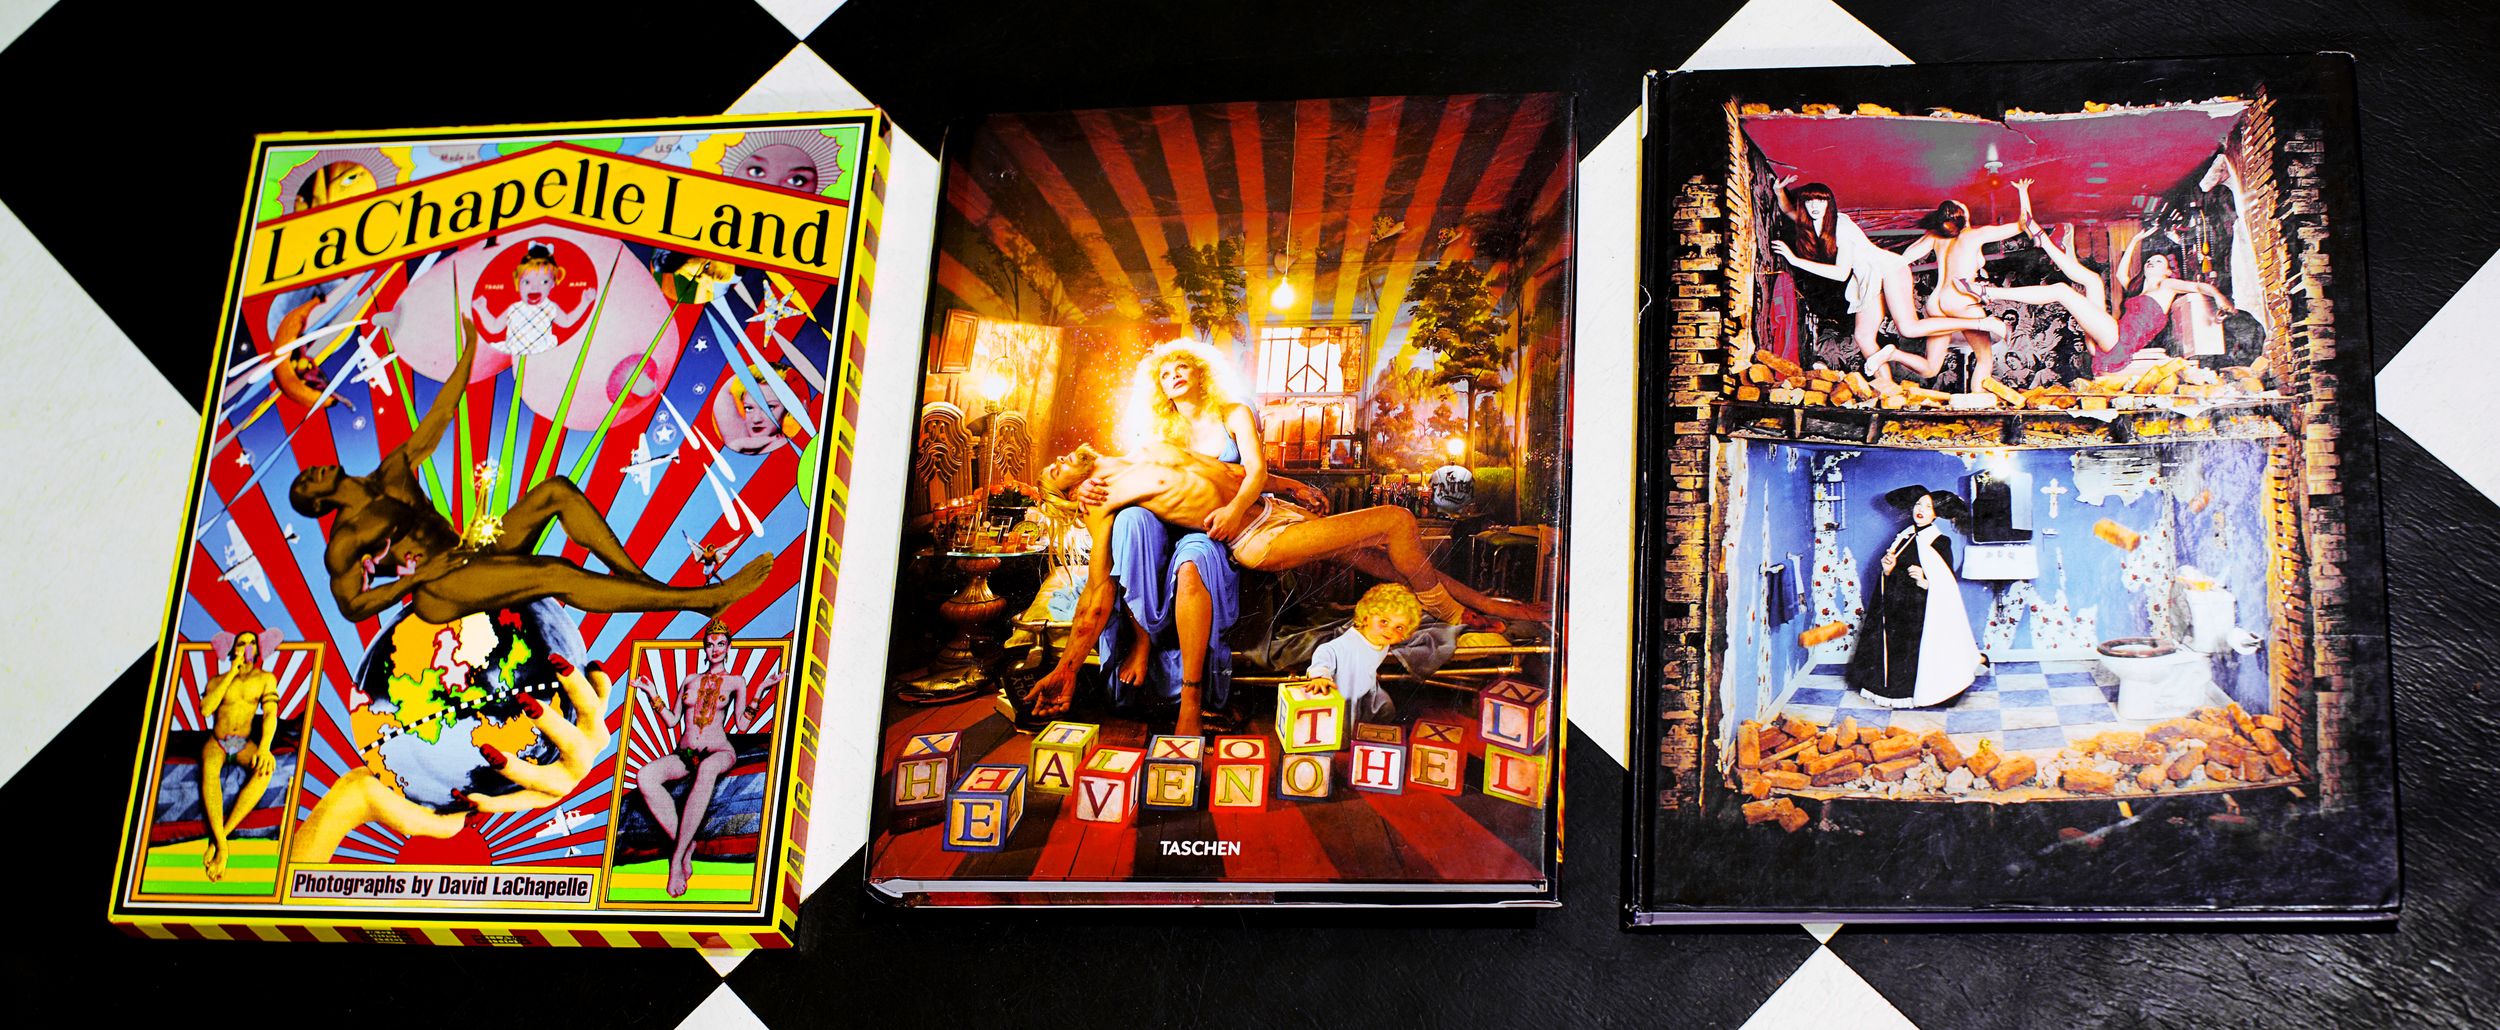 A few of my LaChapelle books. I find myself opening these once every other day or so just when I need a spark in my creativity.